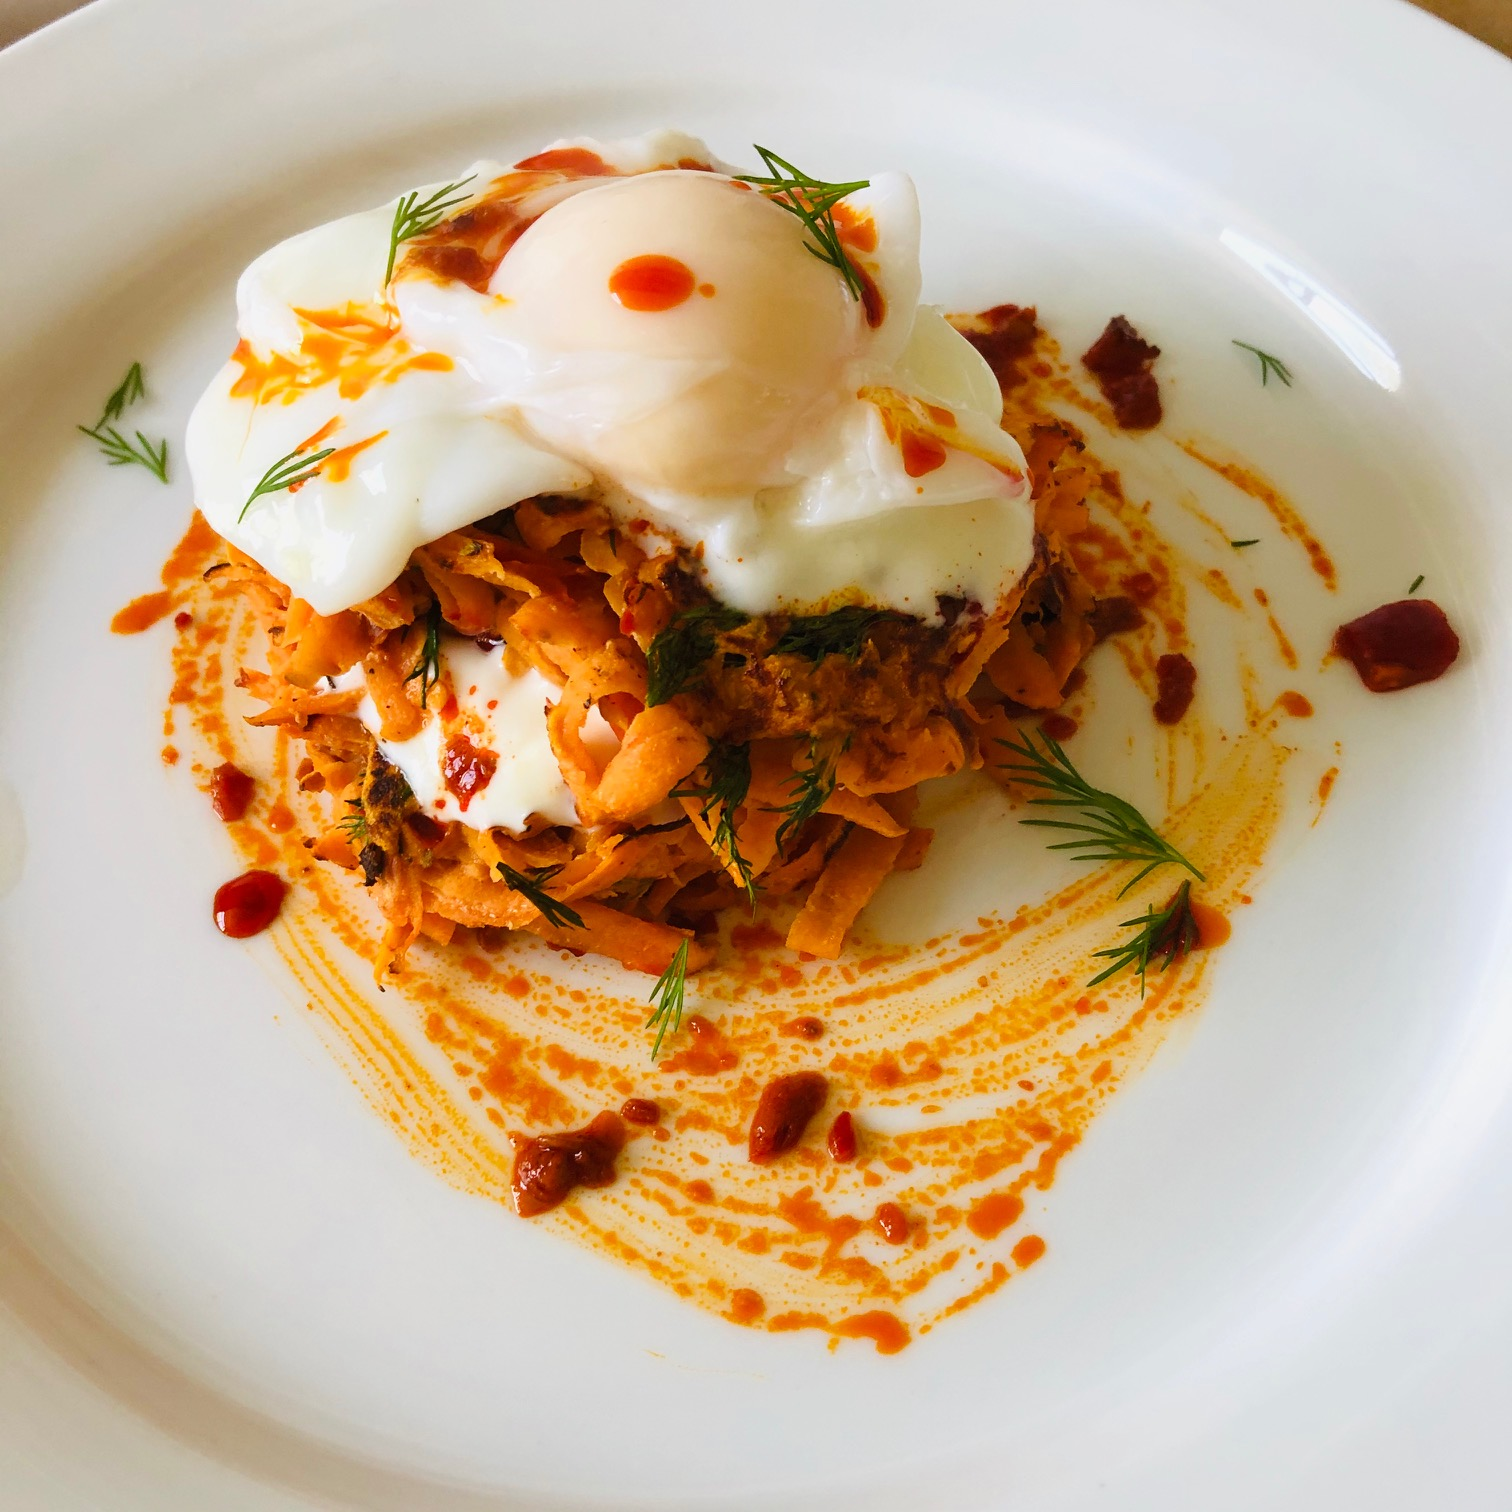 Day 19: Sweet Potato Harissa Cakes with Poached Egg